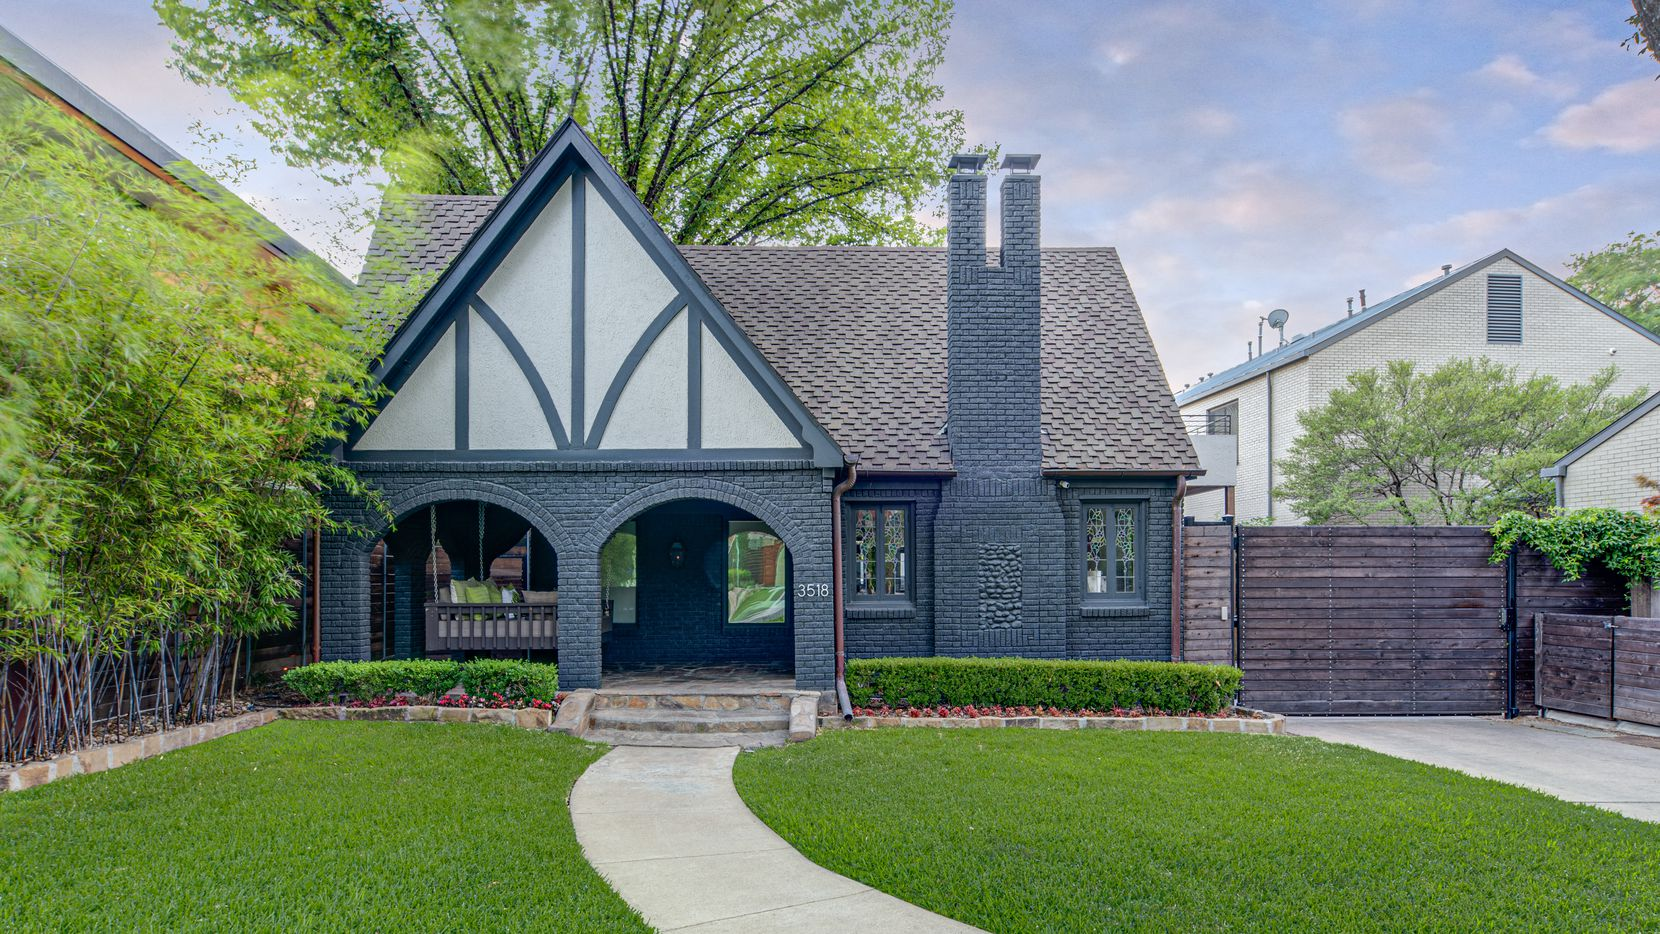 A look at the property at 3518 Springbrook Street in Dallas.